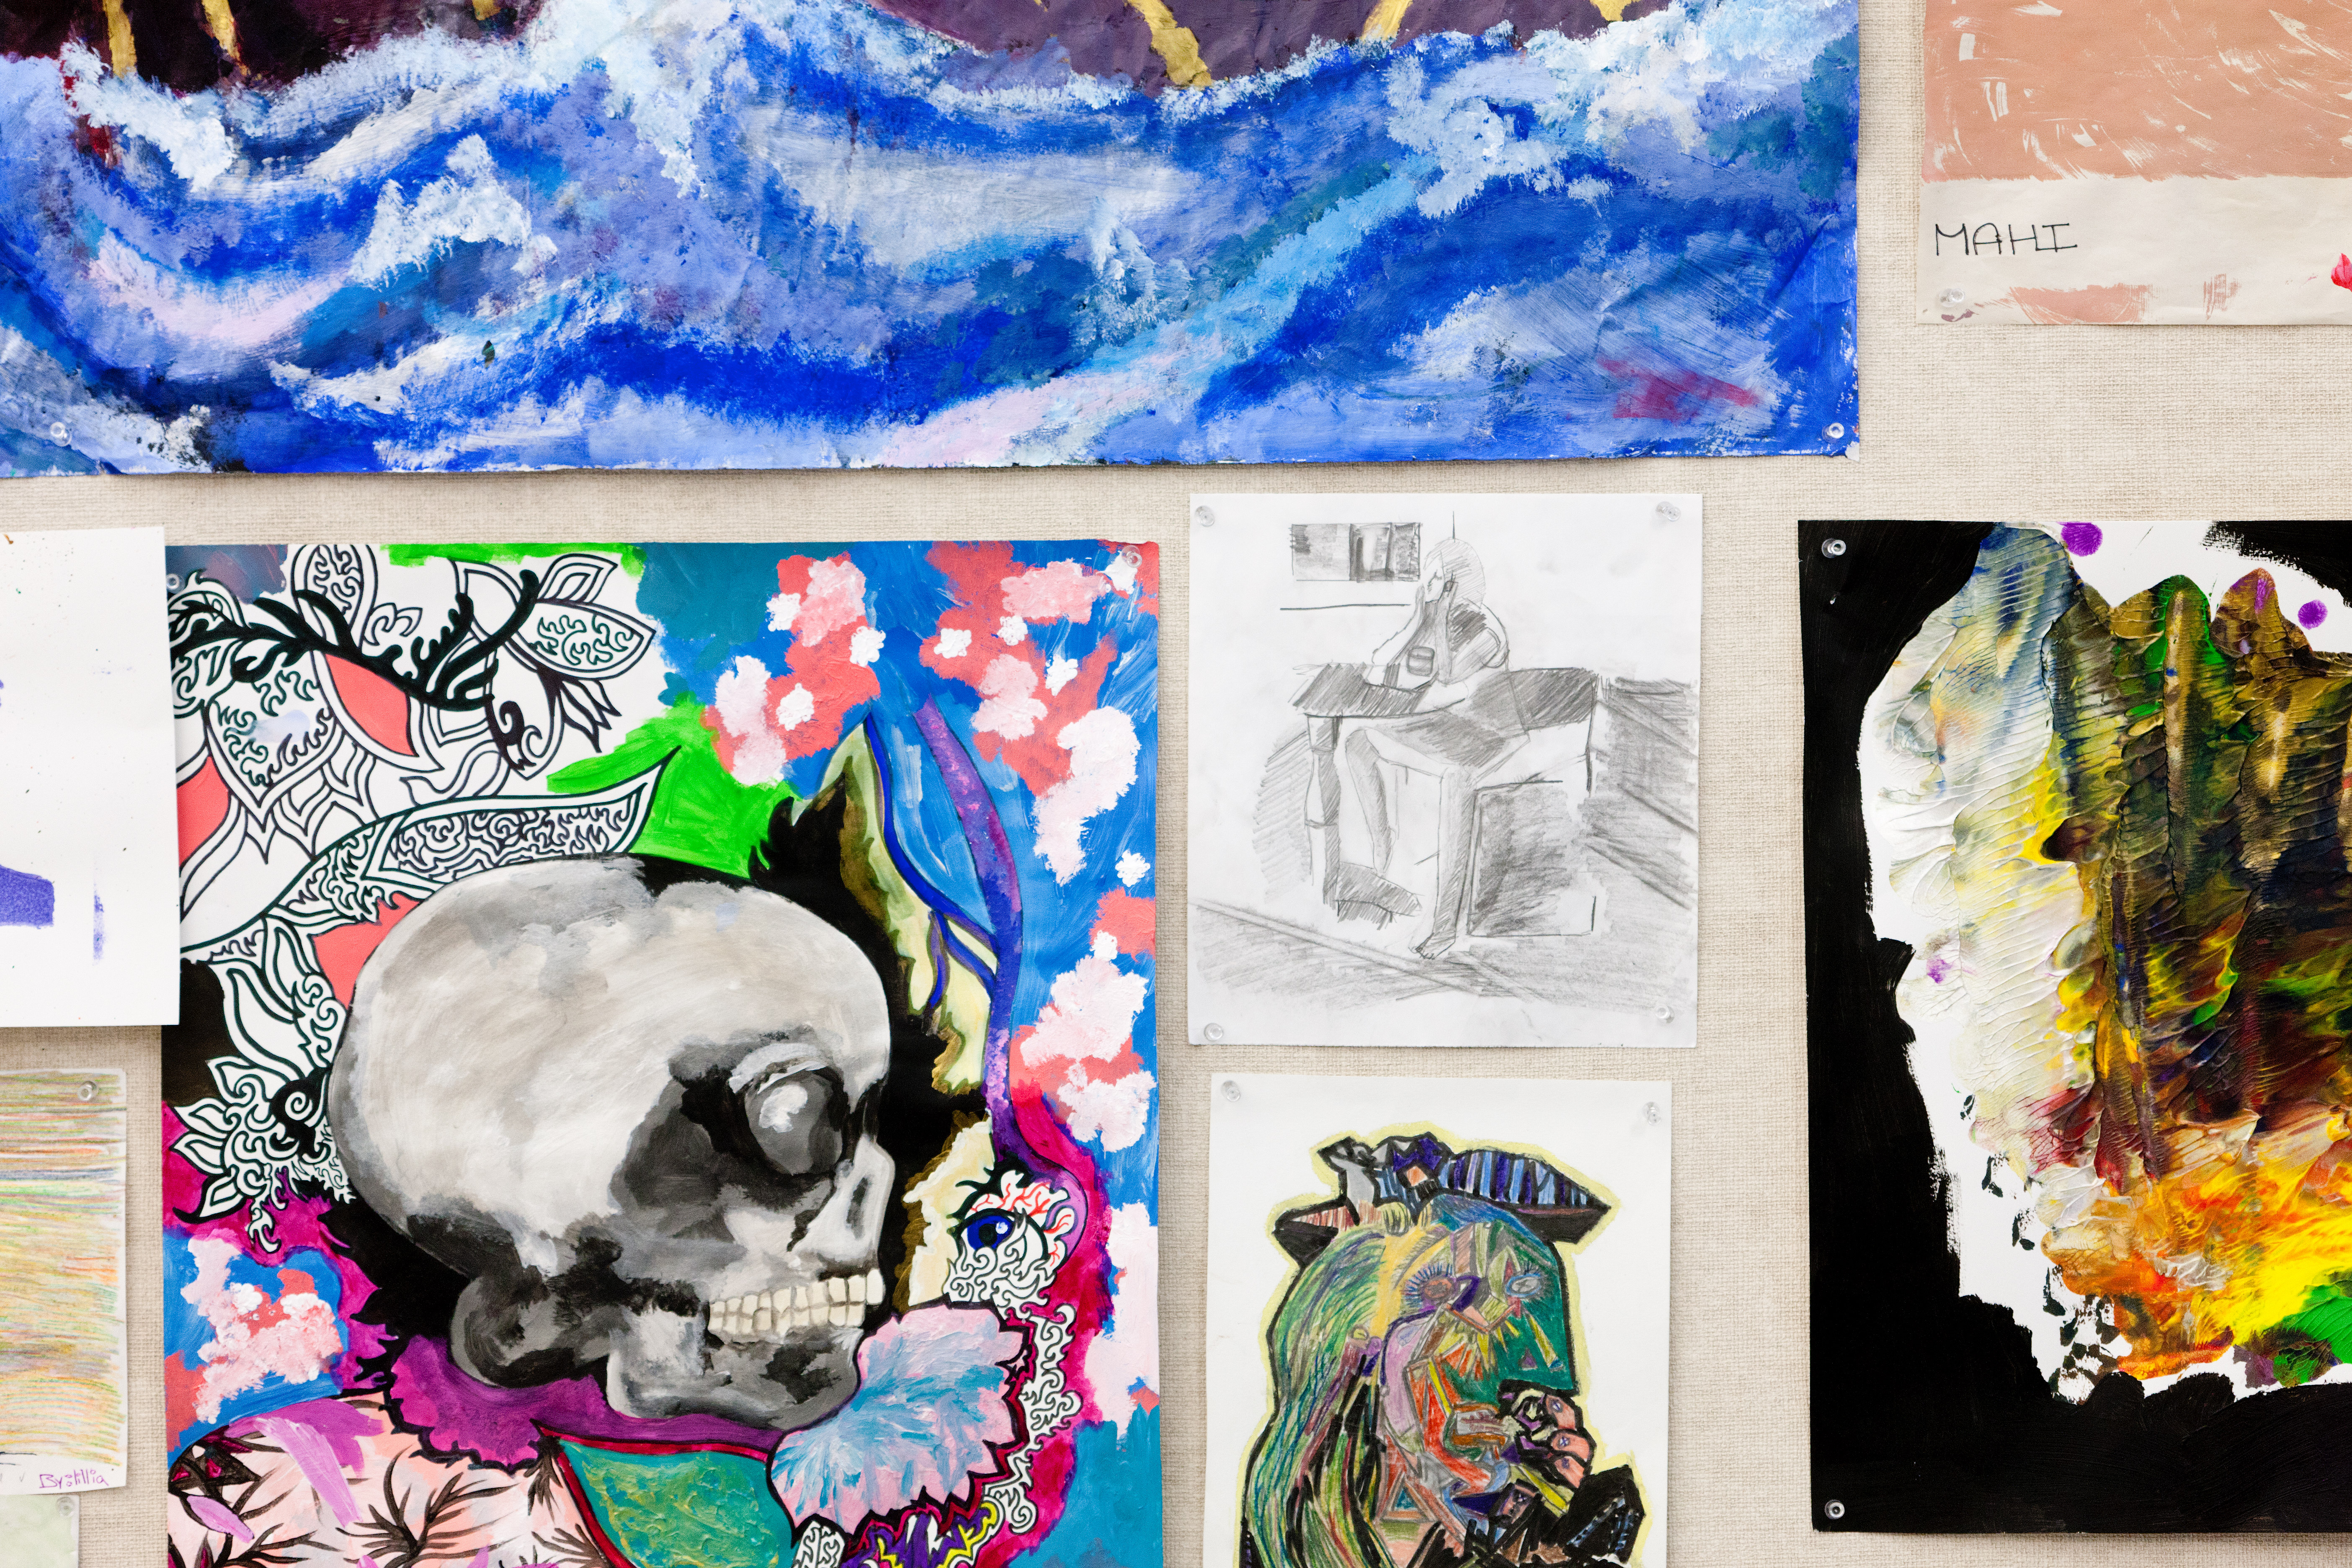 student drawings, paintings, and mixed media pieces